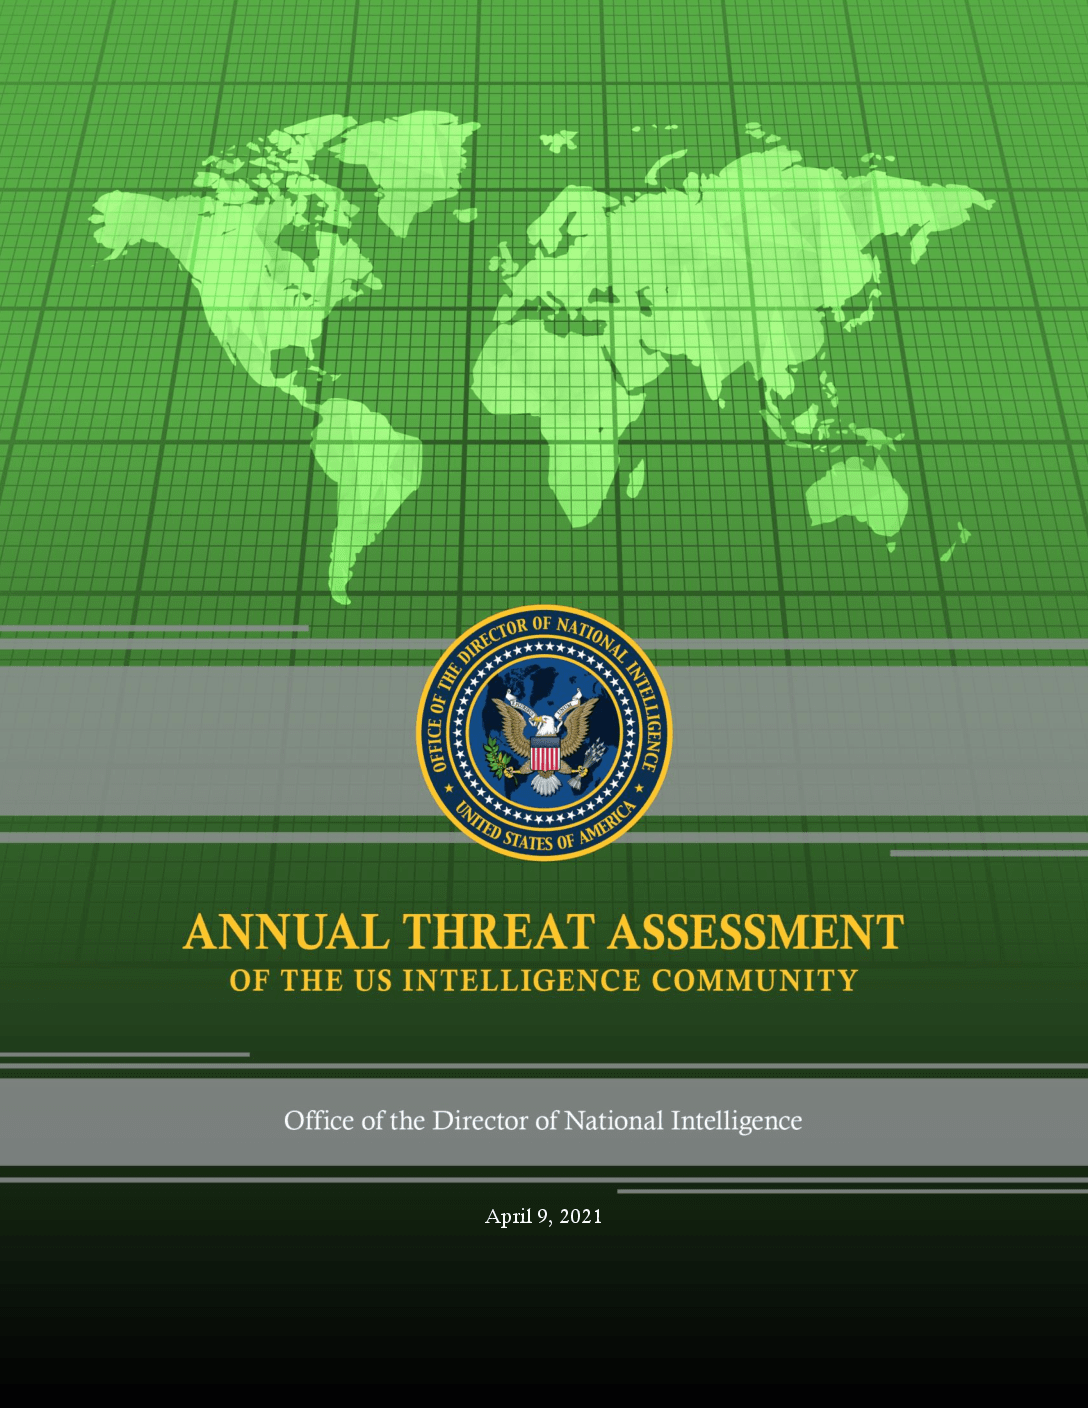 U.S. Threat Assessment Report